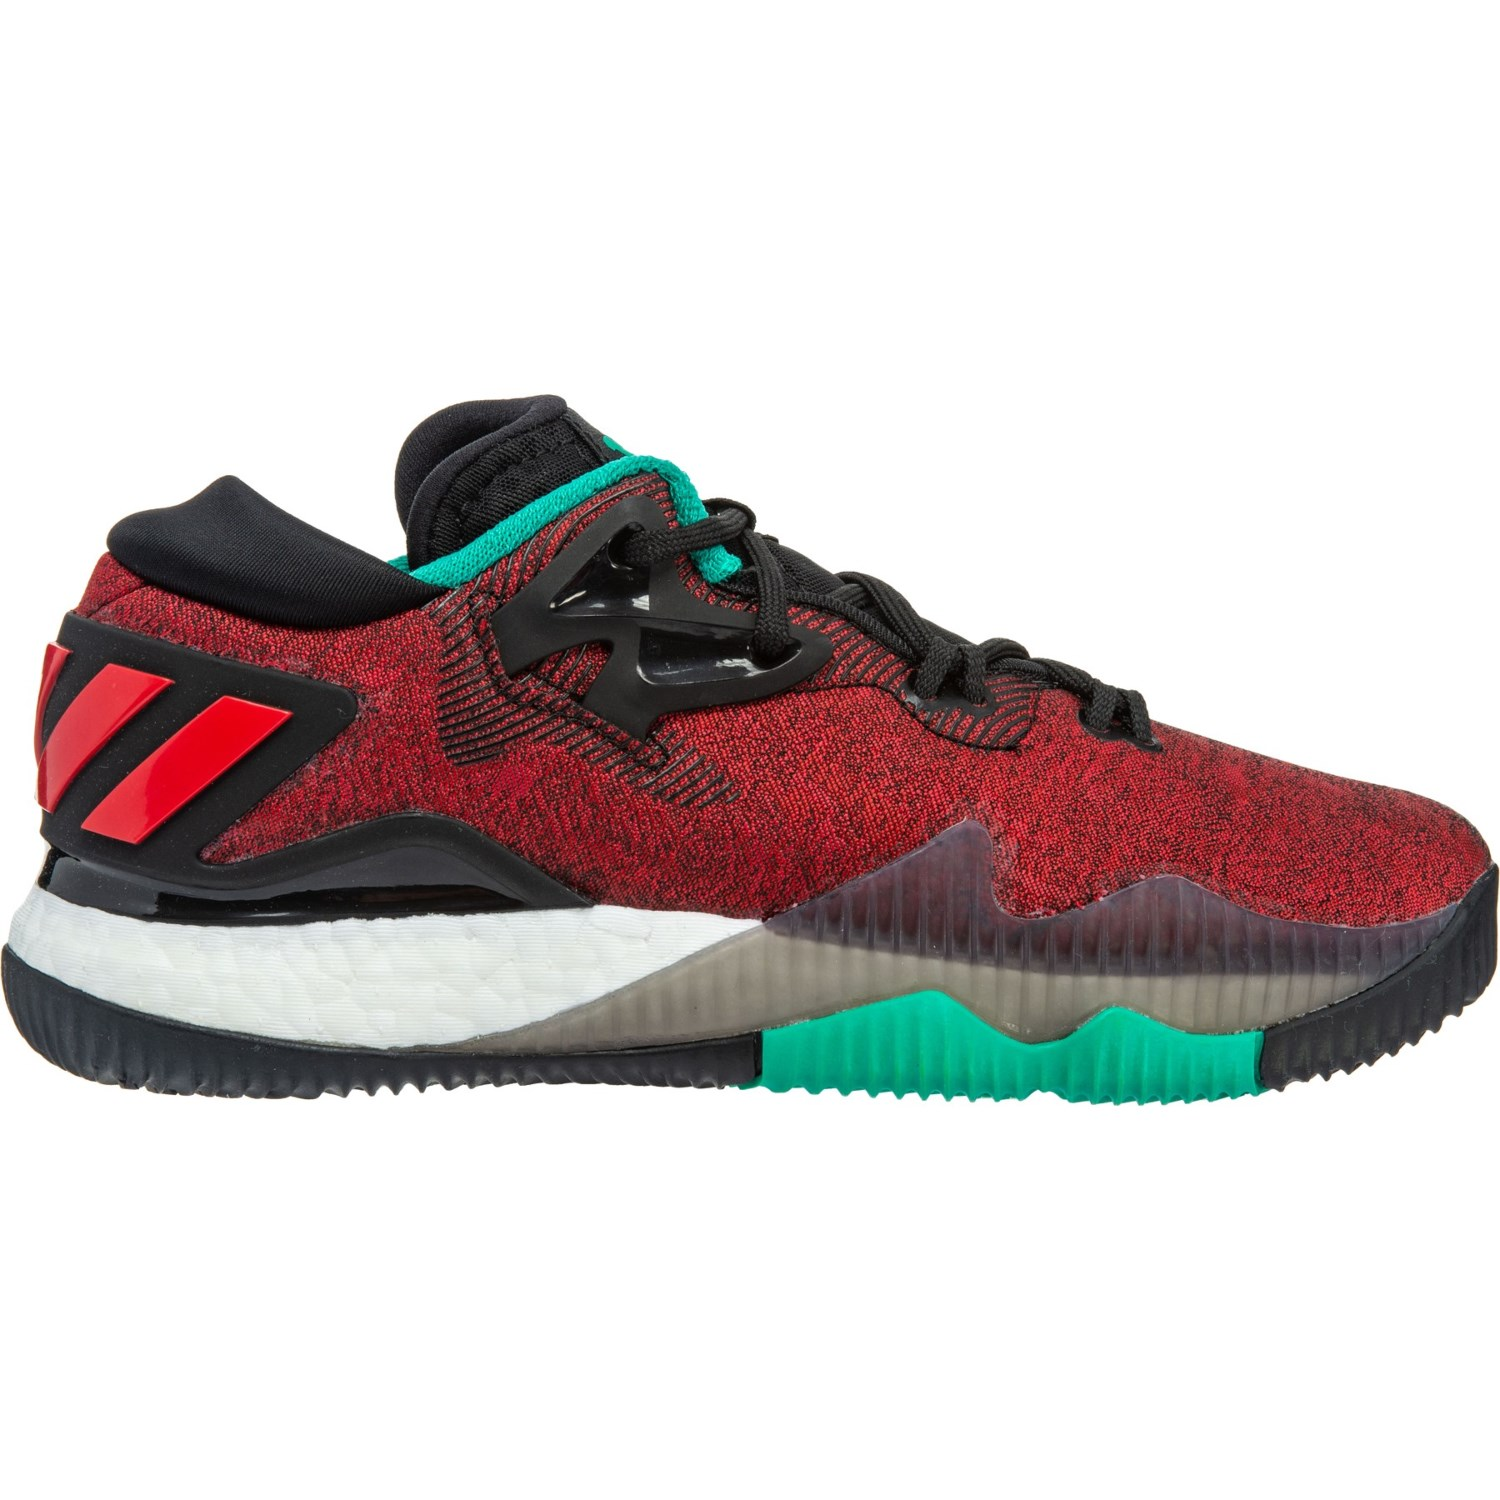 pretty nice 94d21 a9382 adidas Crazylight Boost Low Basketball Shoes (For Big Kids)